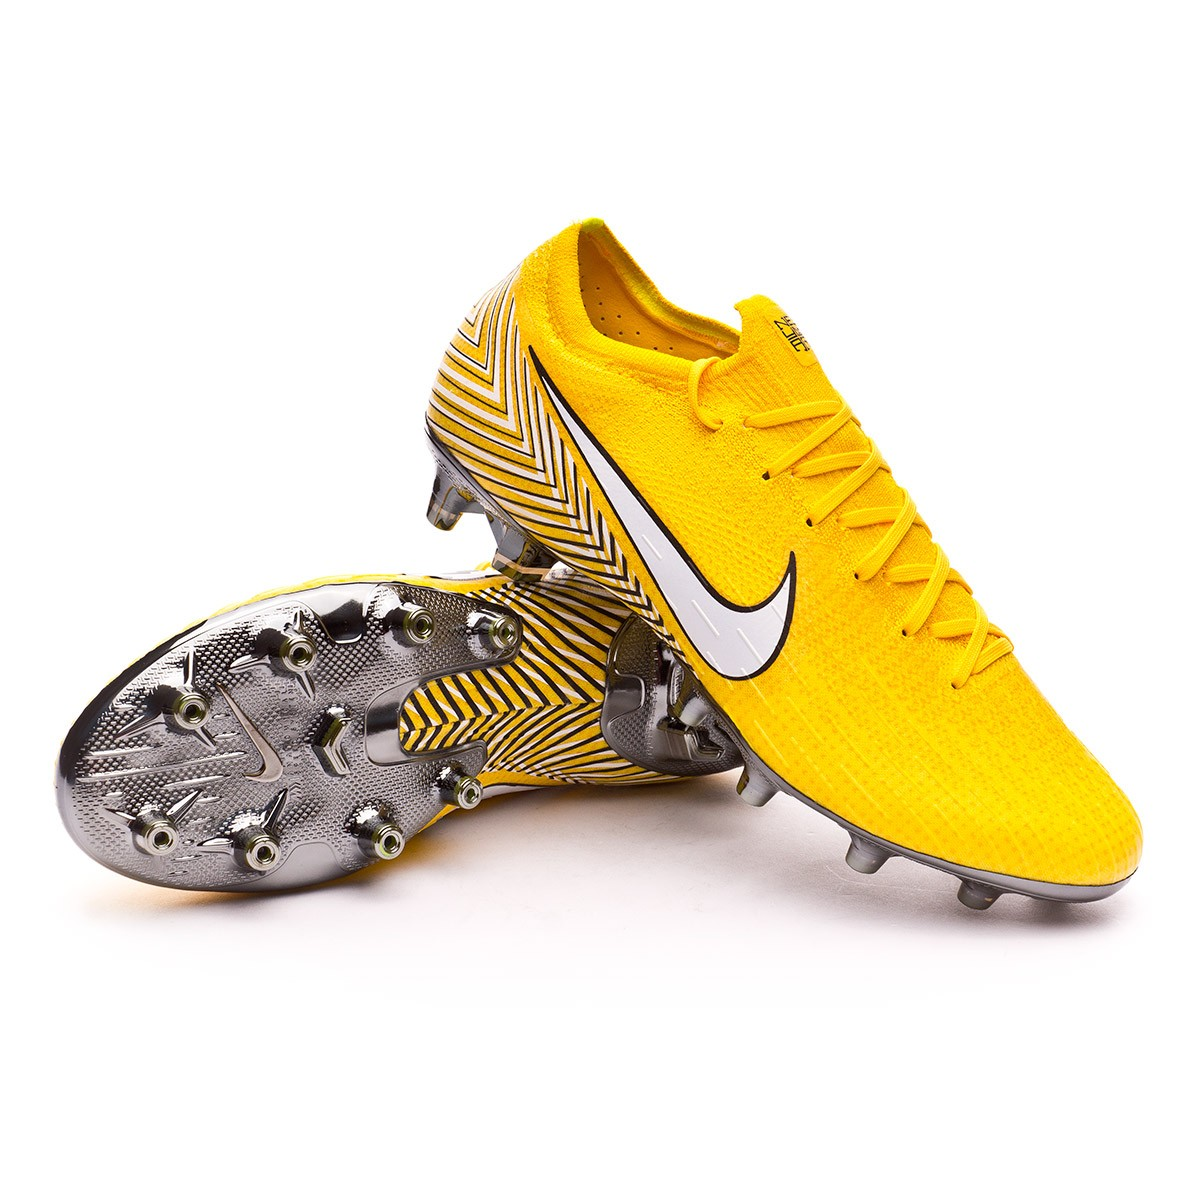 Boot Nike Mercurial Vapor XII Elite AG-Pro Neymar Yellow-Dinamic ... f79e96bcf8